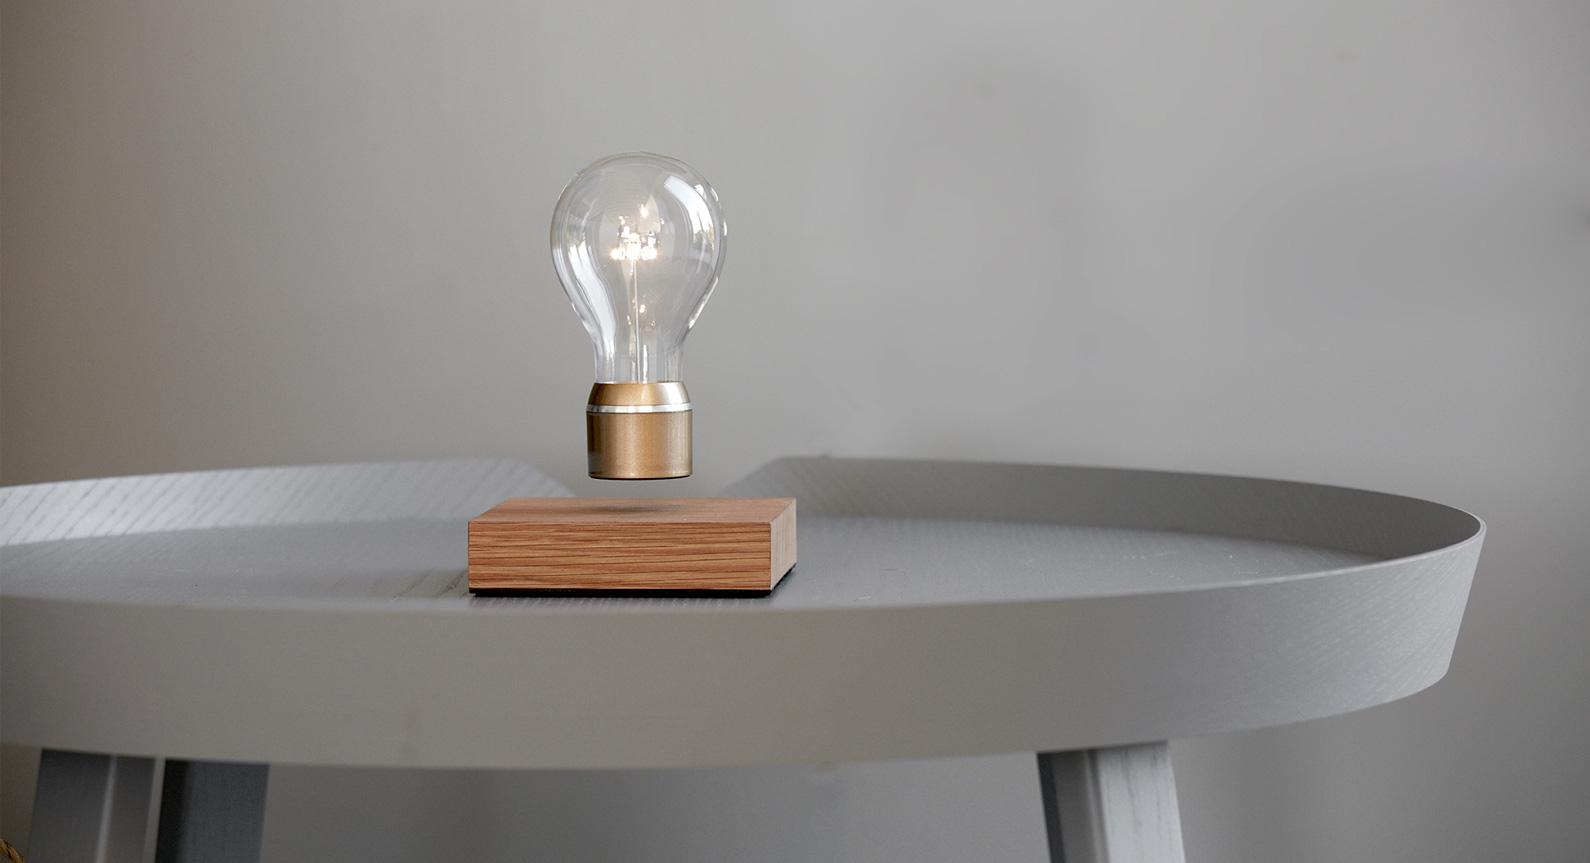 Introducing The FLYTE Levitating Light Bulb